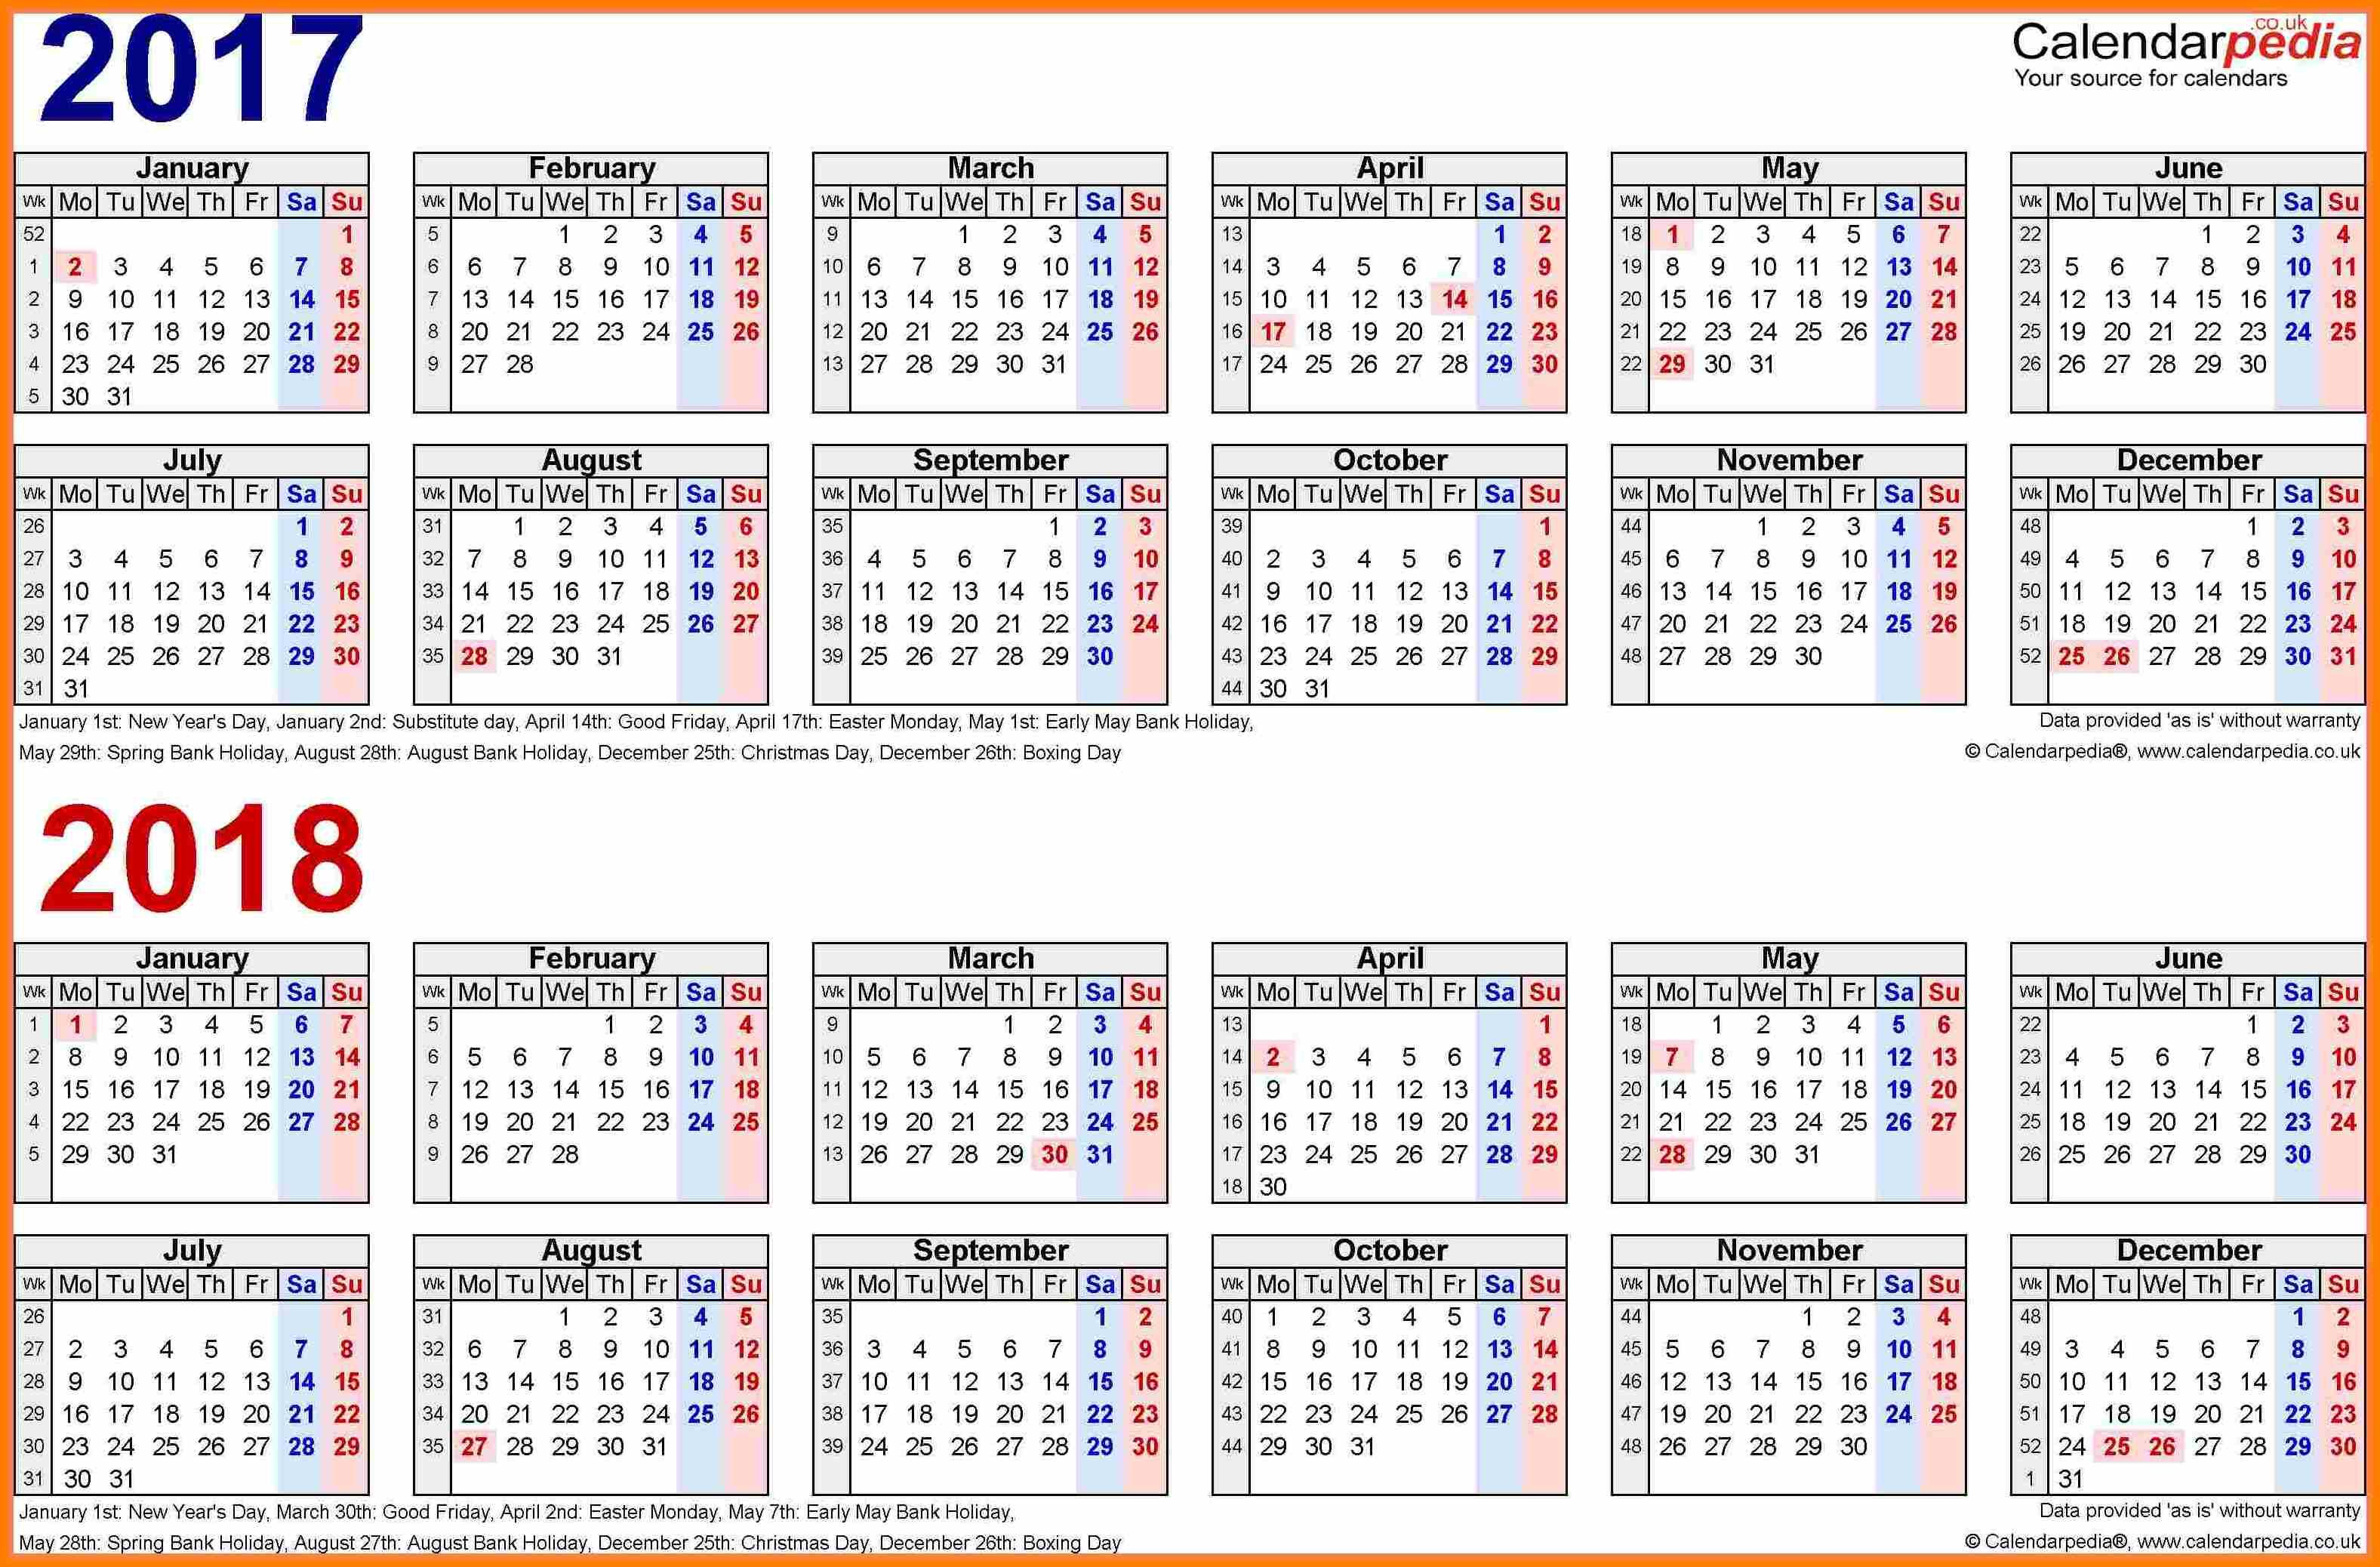 Biweekly Pay Schedule 2018 Template